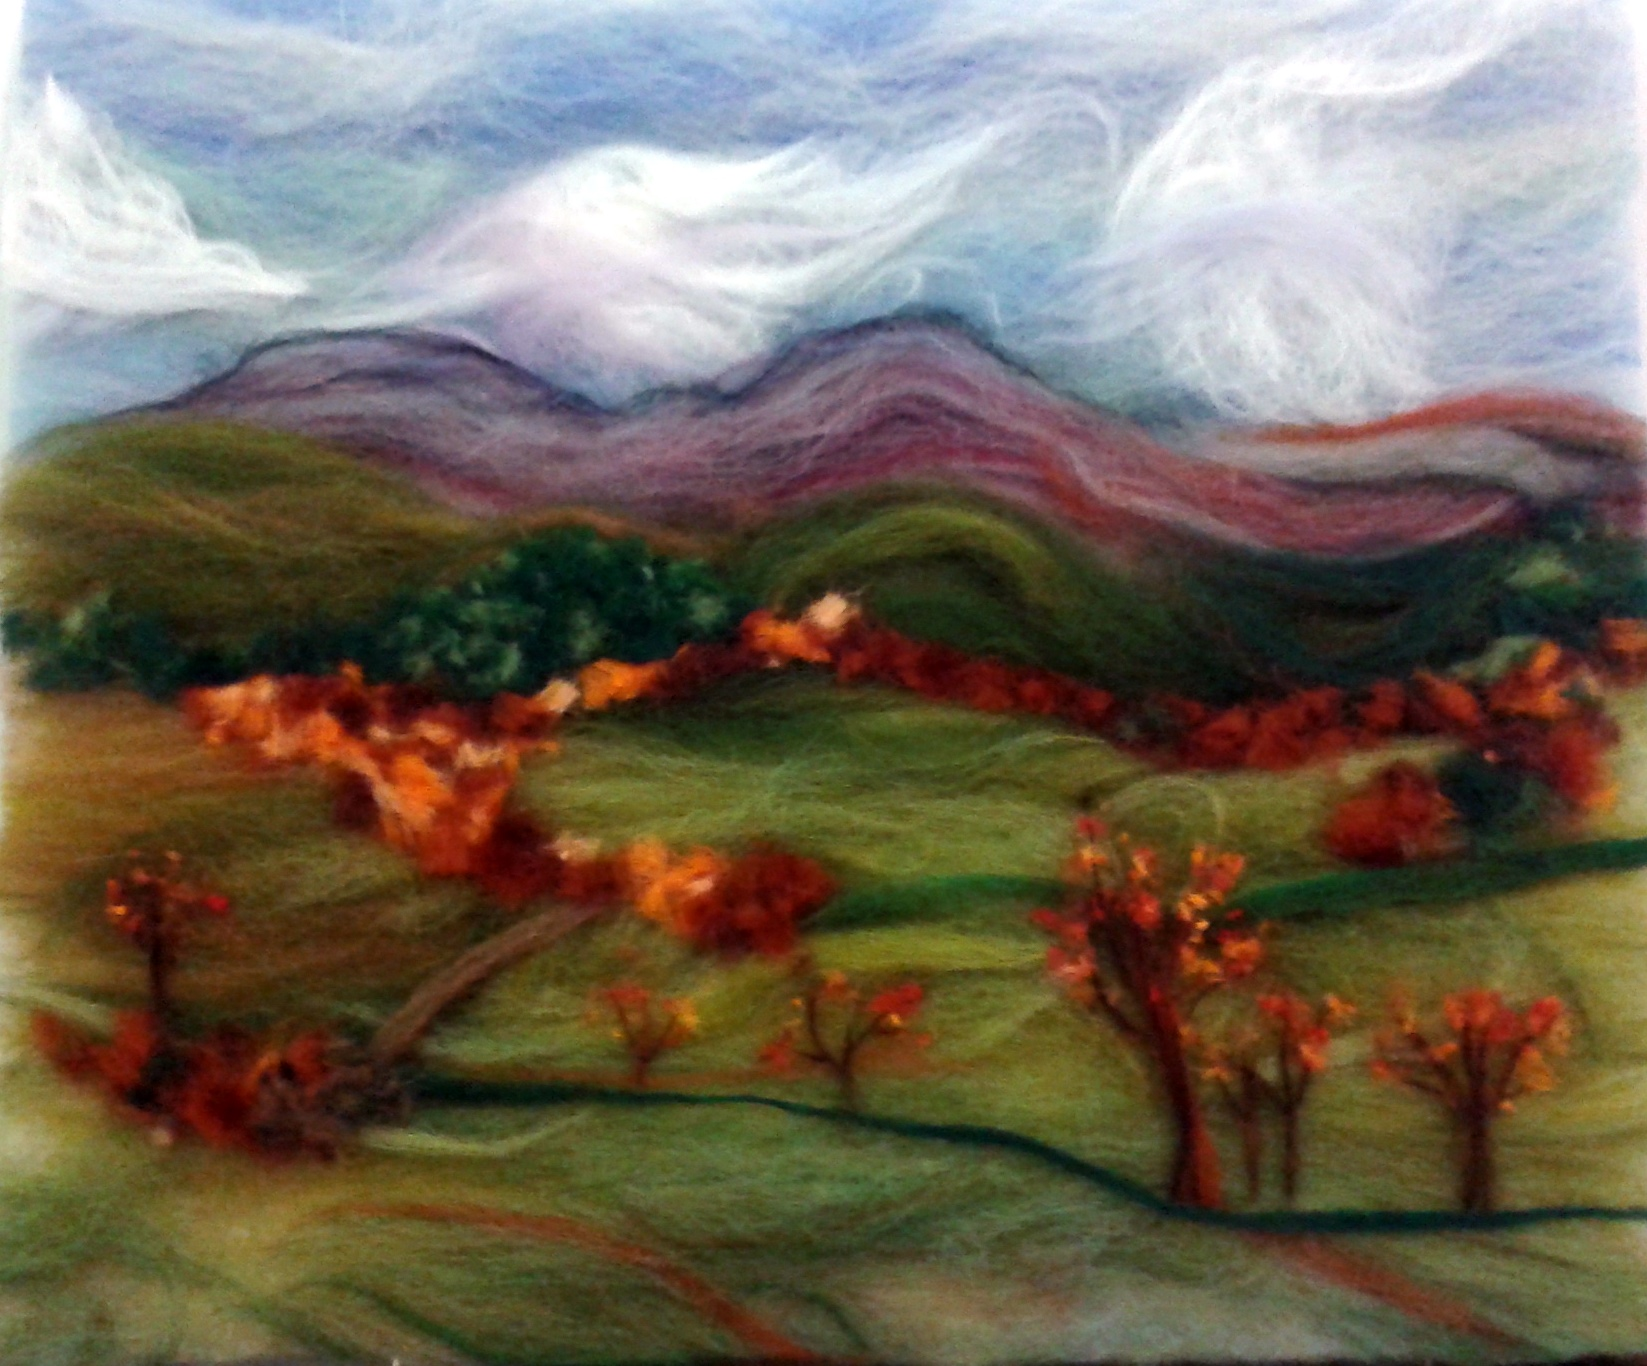 Autumn landscape recreated in wool fibres by a student